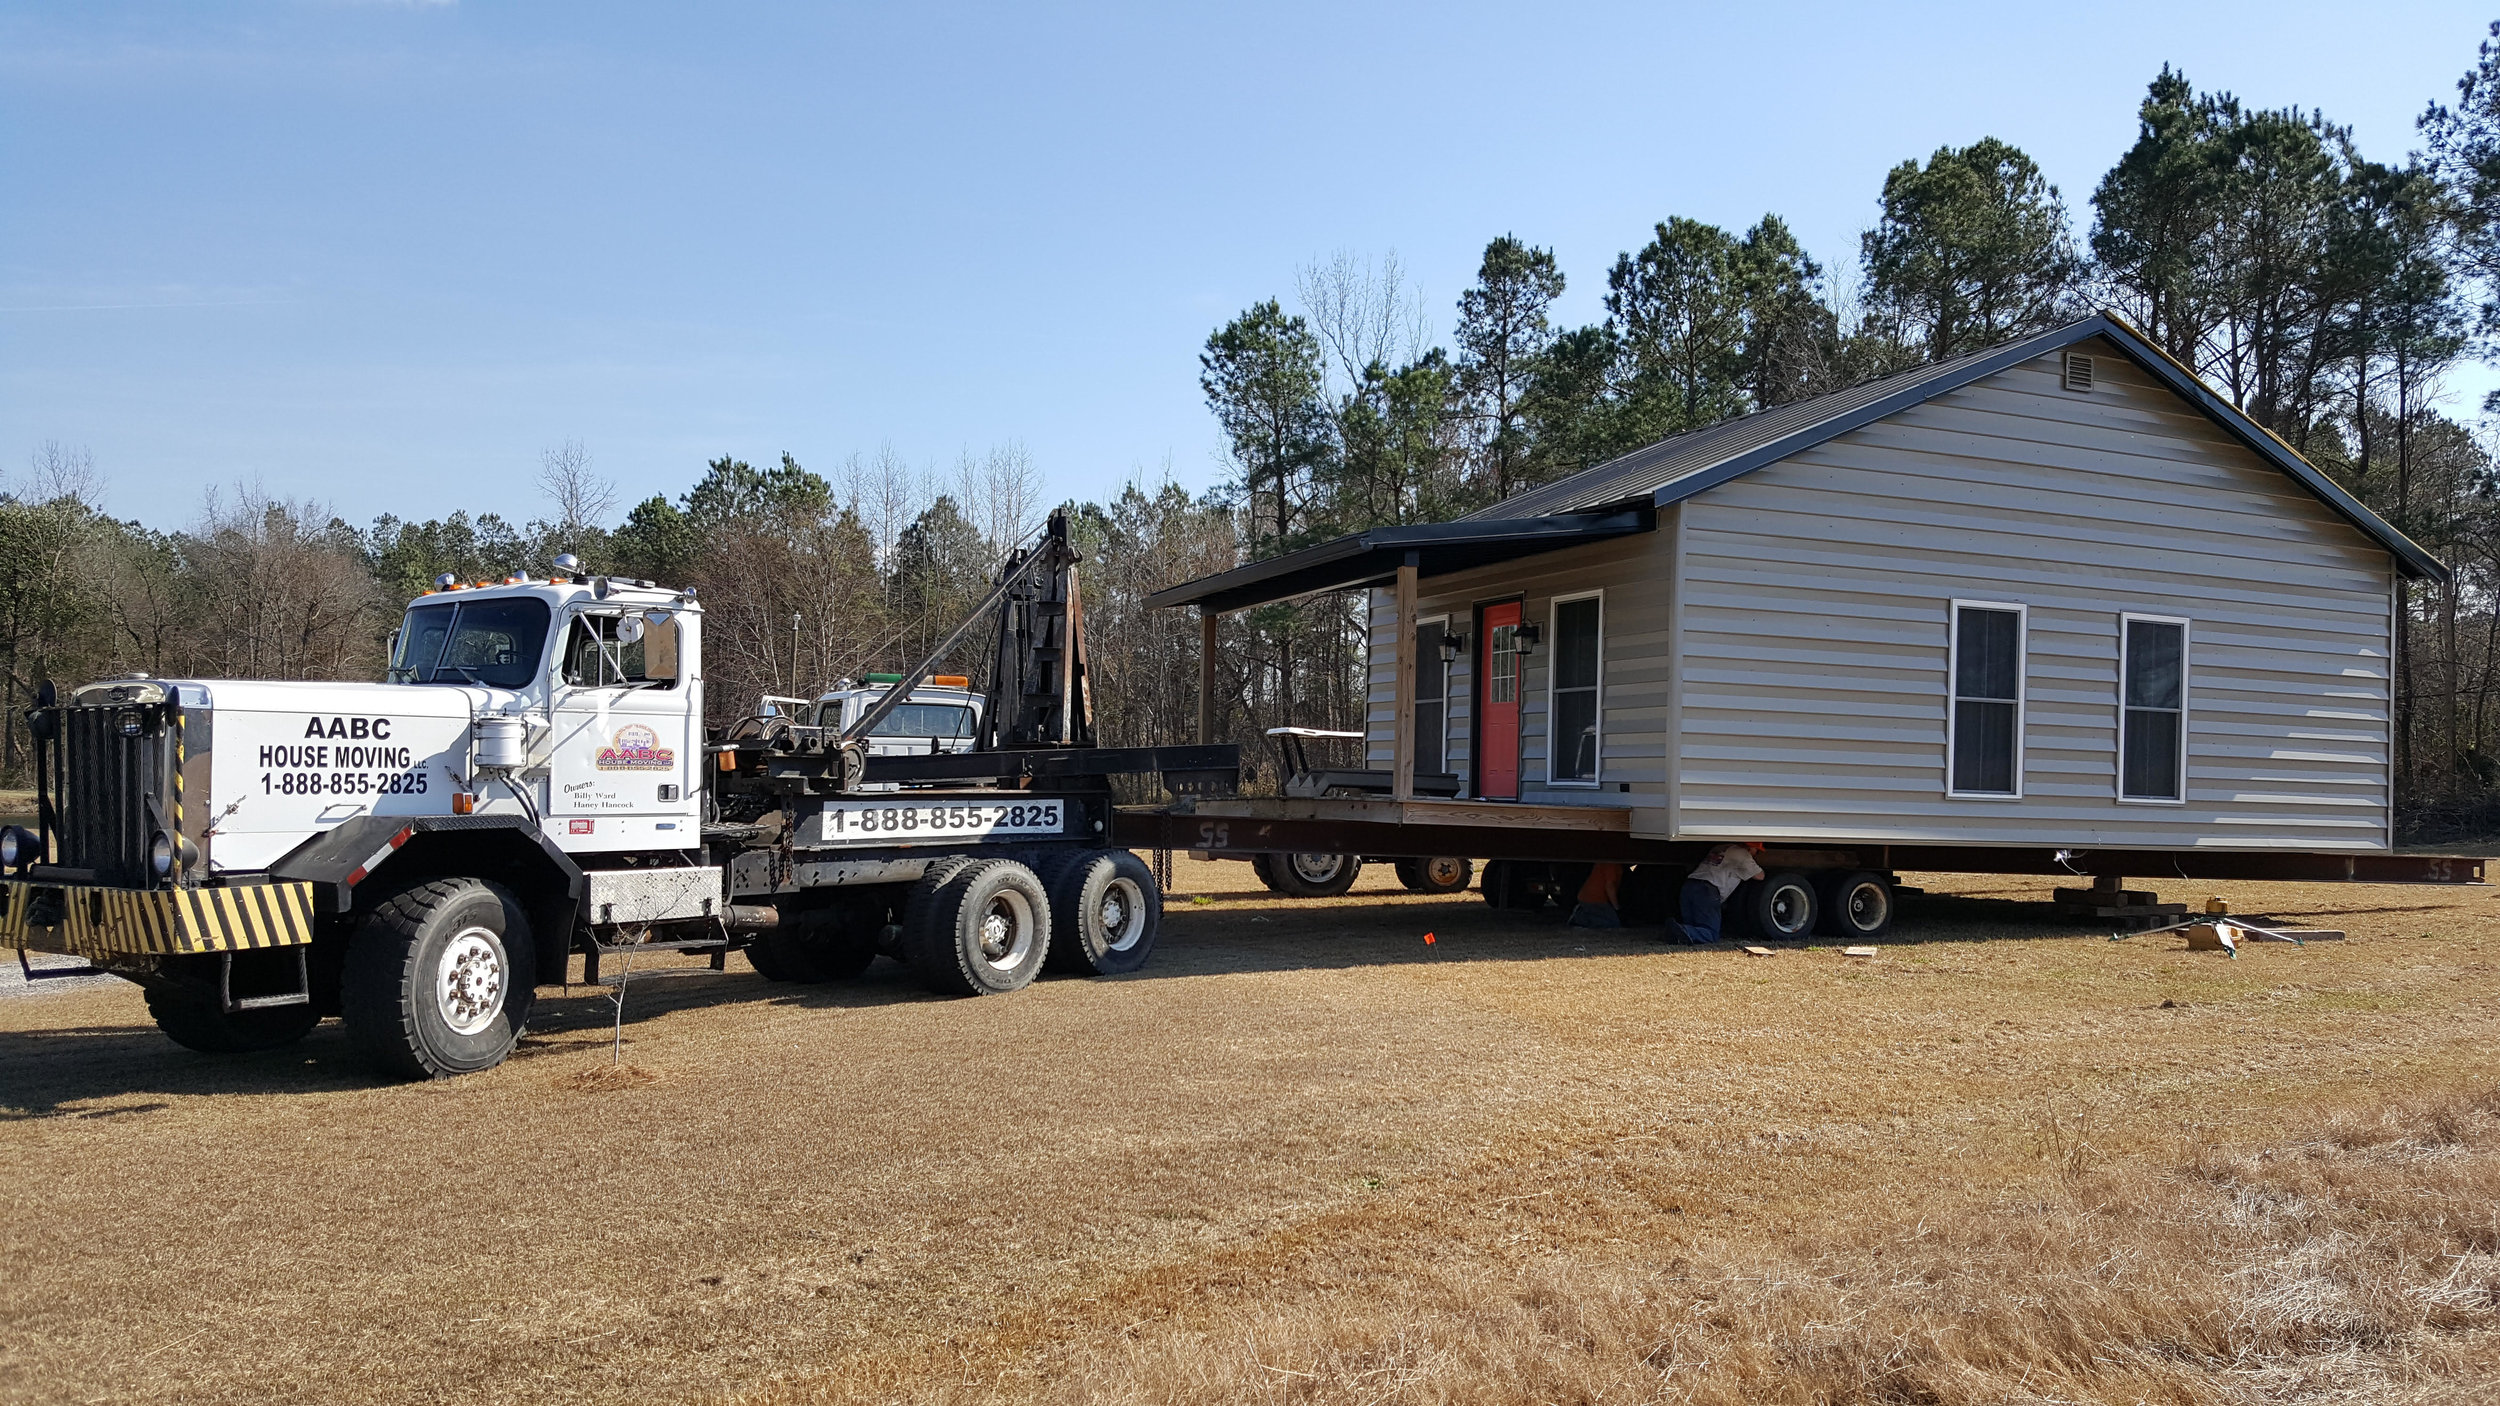 This home in Turbeville was relocated to a new location 10 miles away.